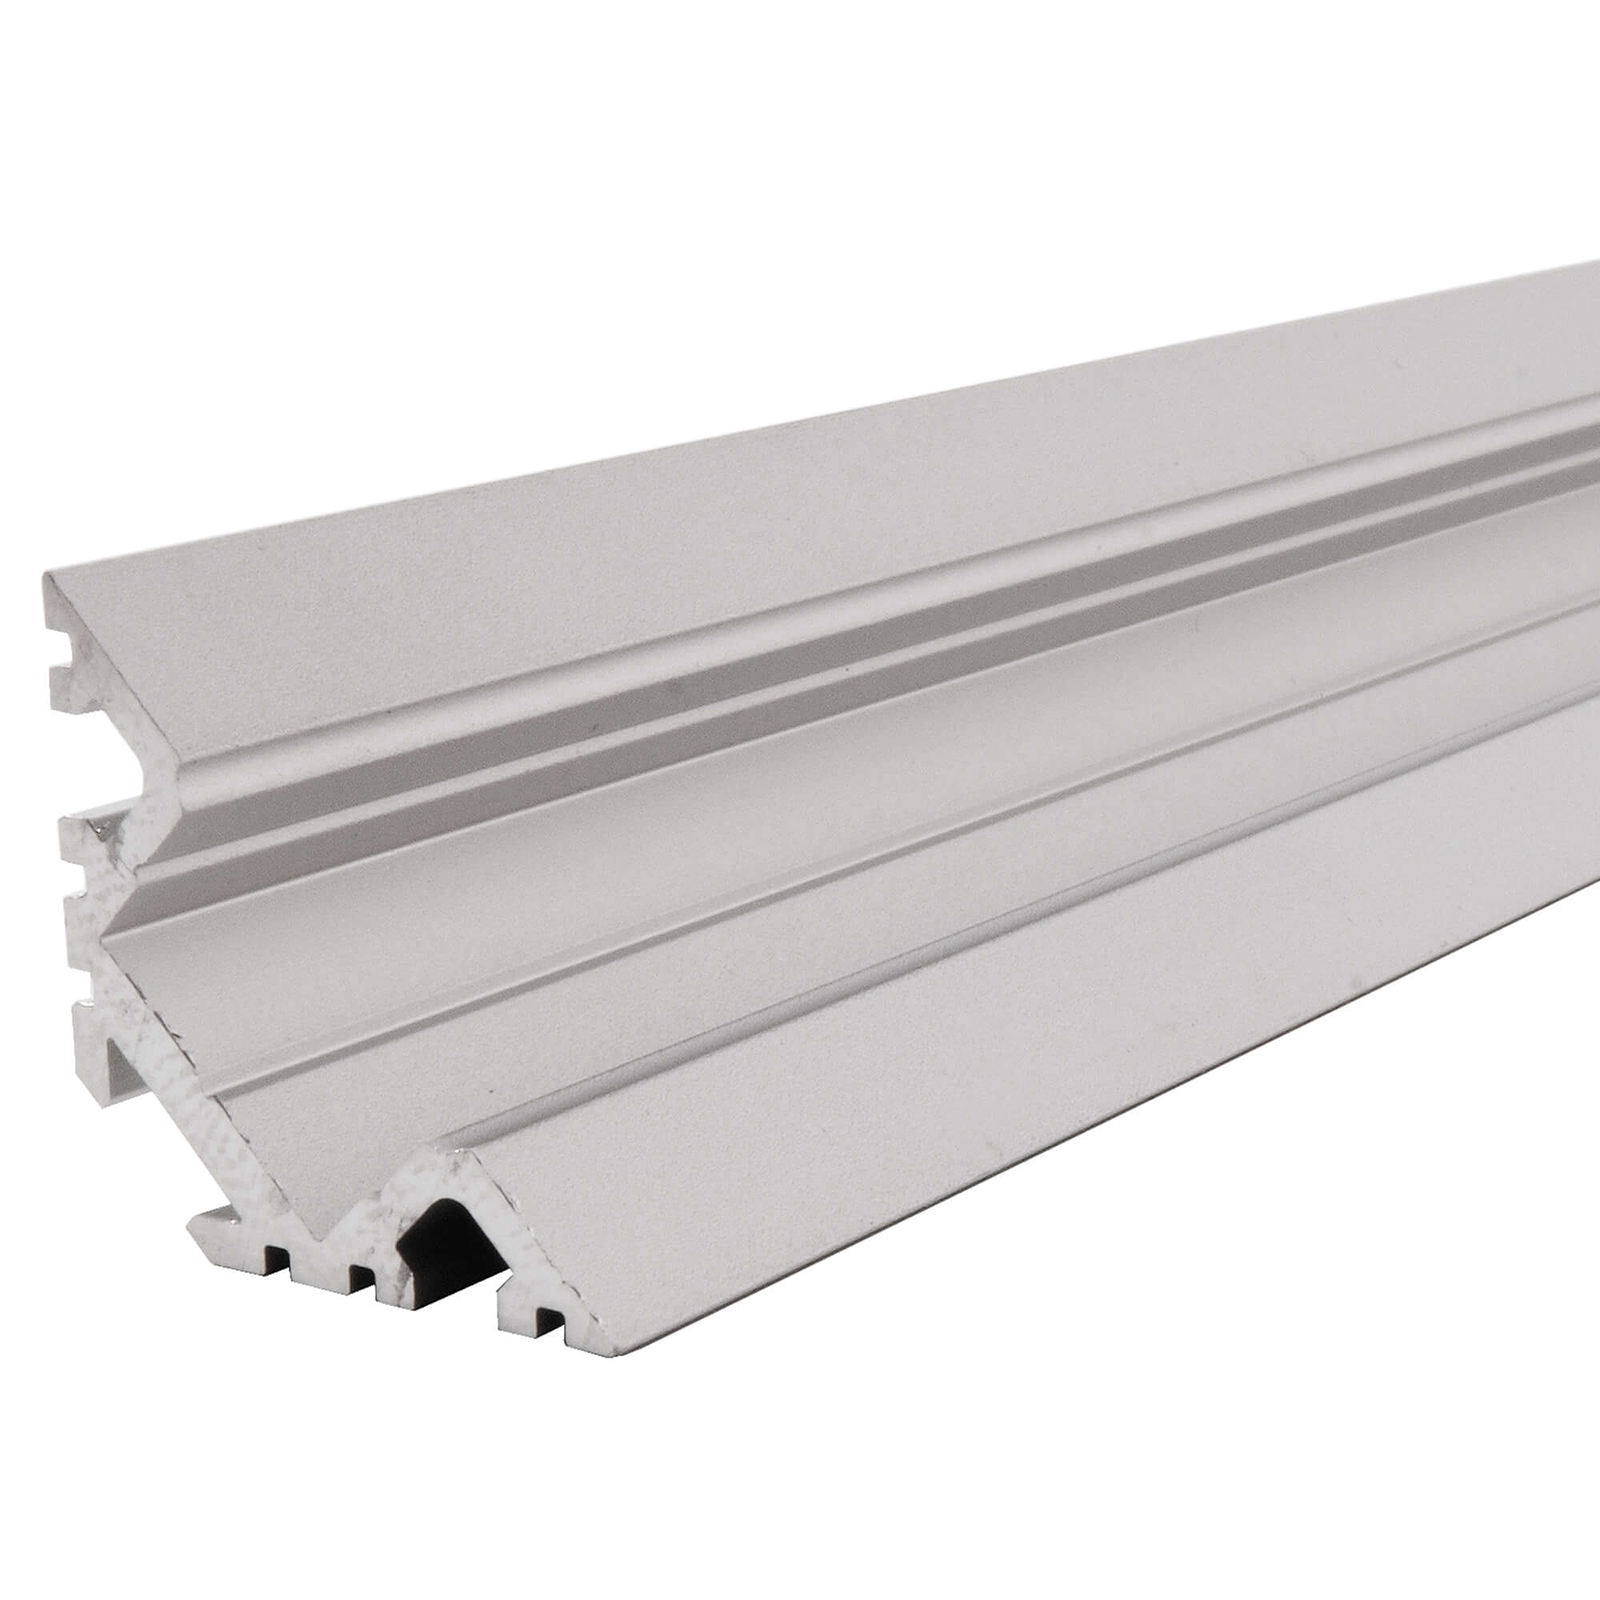 Aluminium corner profile AV for strips LED strip profiled bar light corner